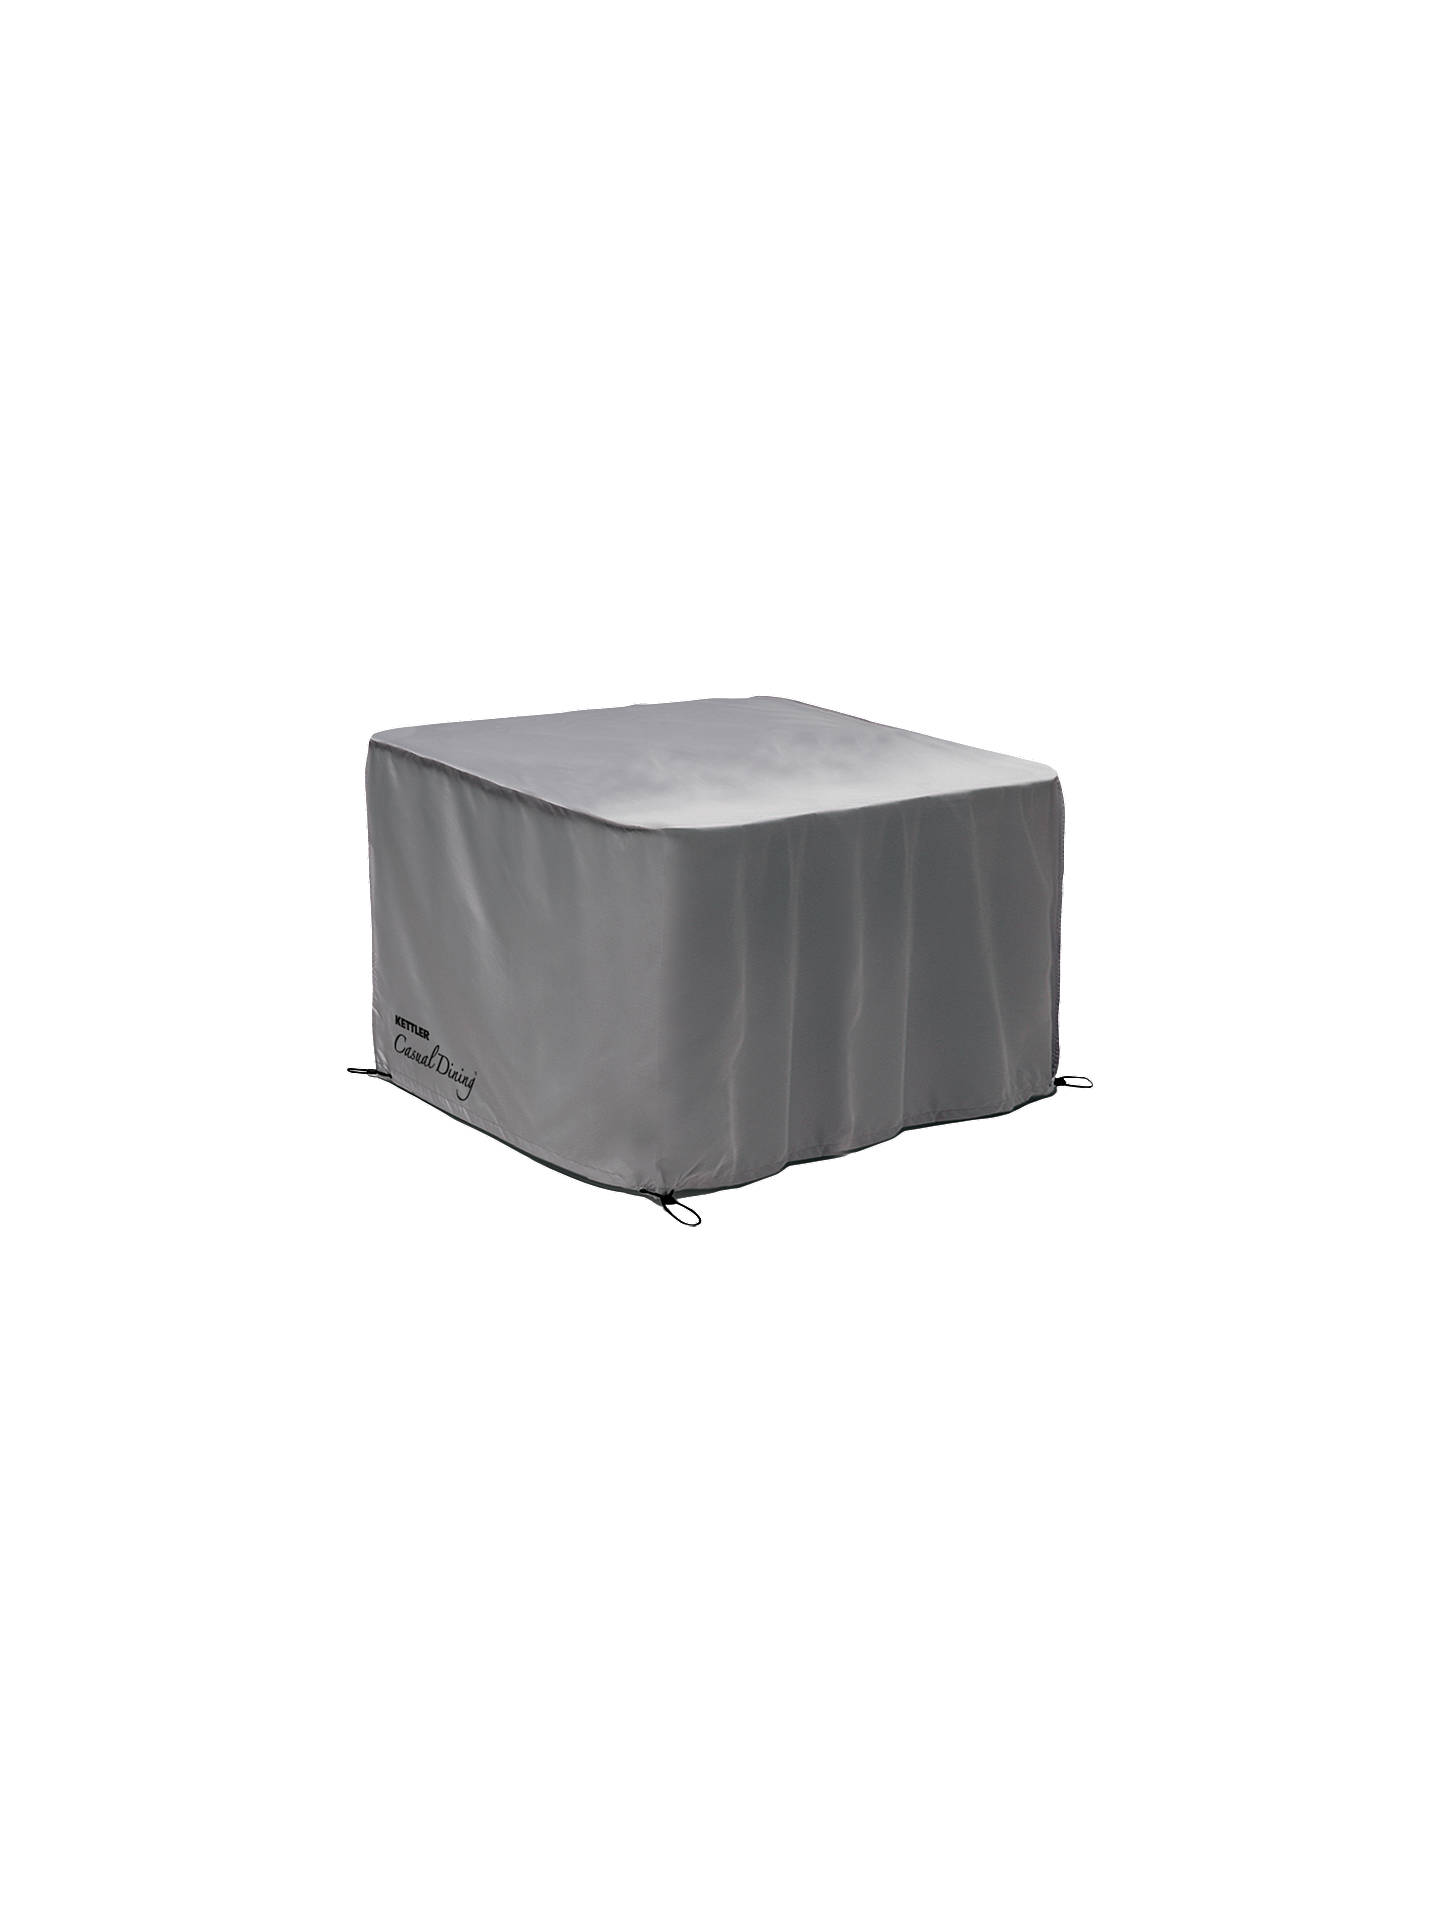 Buykettler madrid outdoor table cover online at johnlewis com